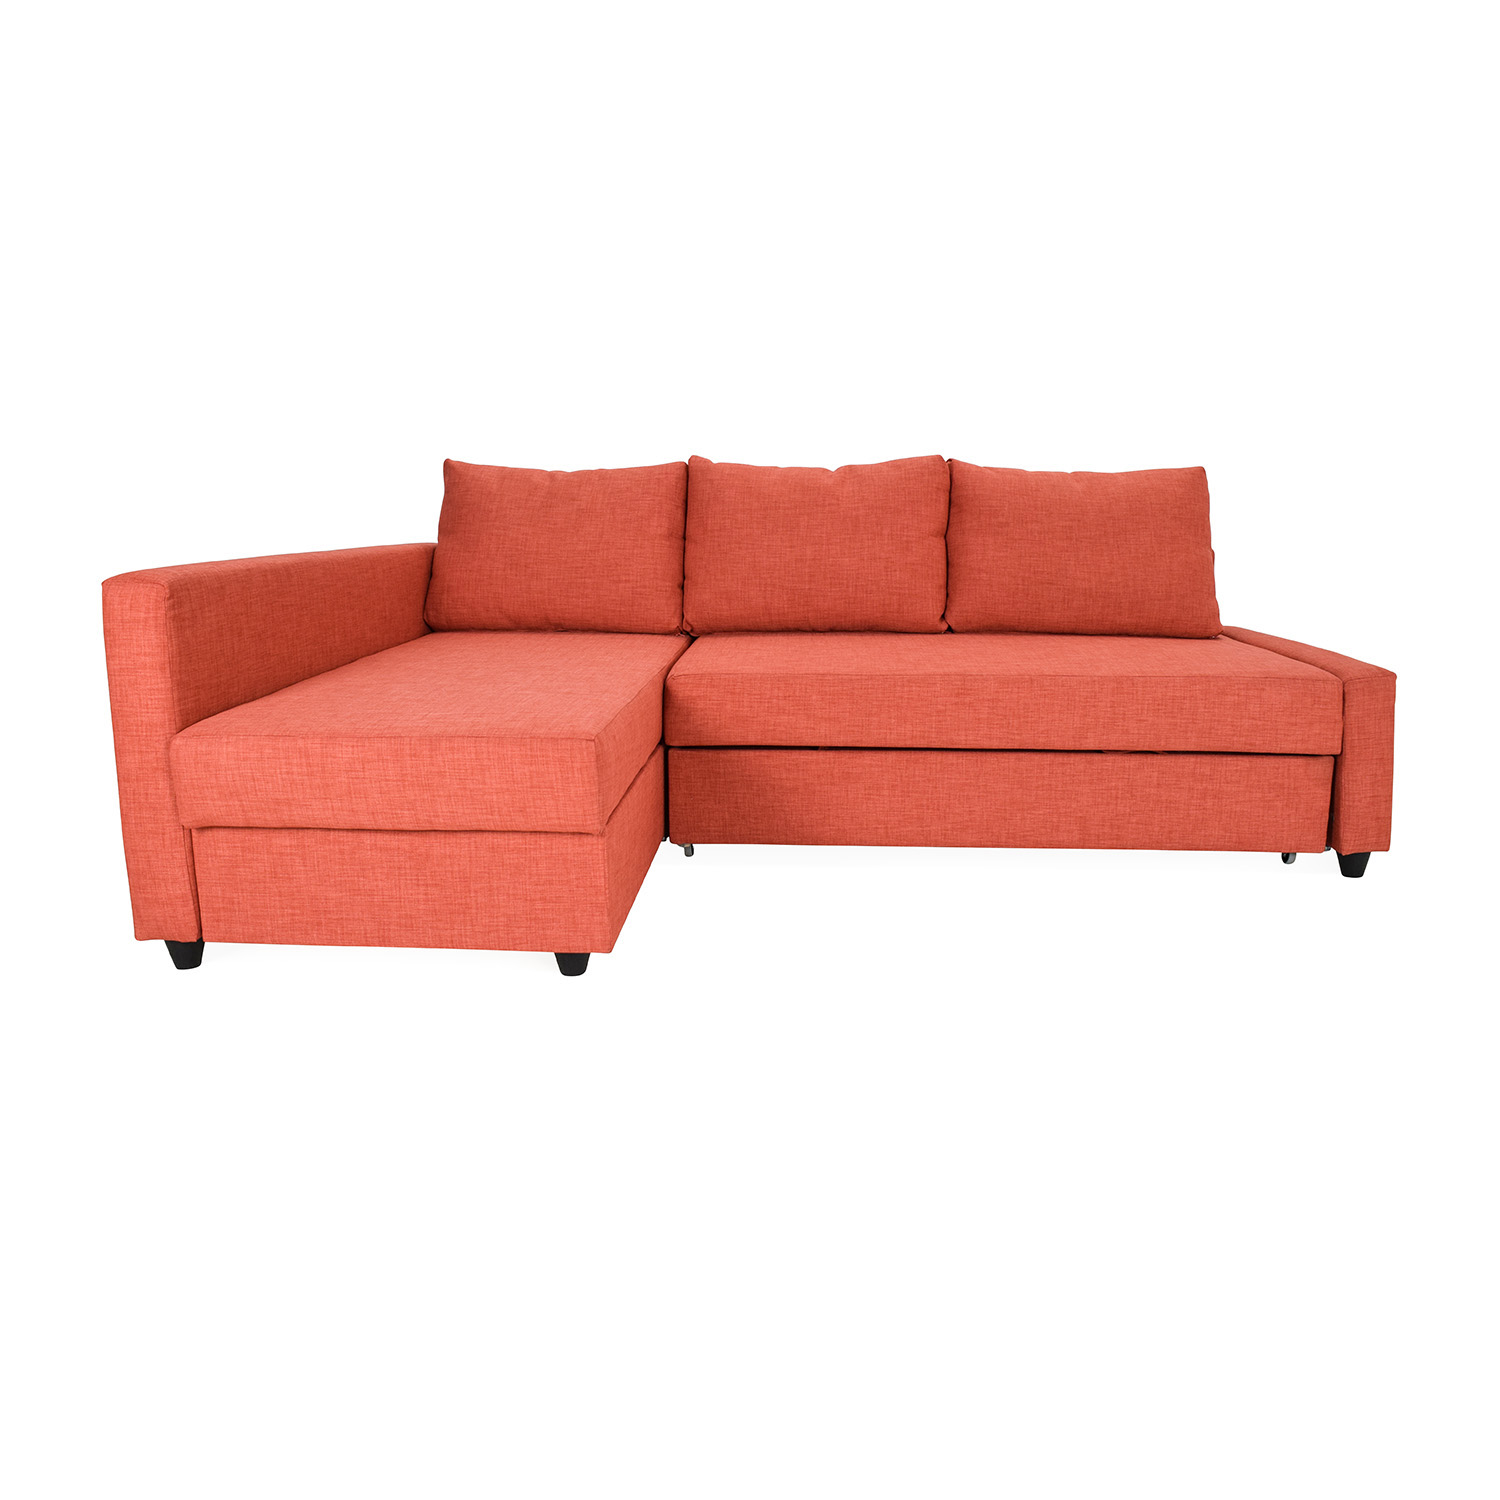 49 off ikea friheten sofa bed with chaise sofas for Chaise bed sofa